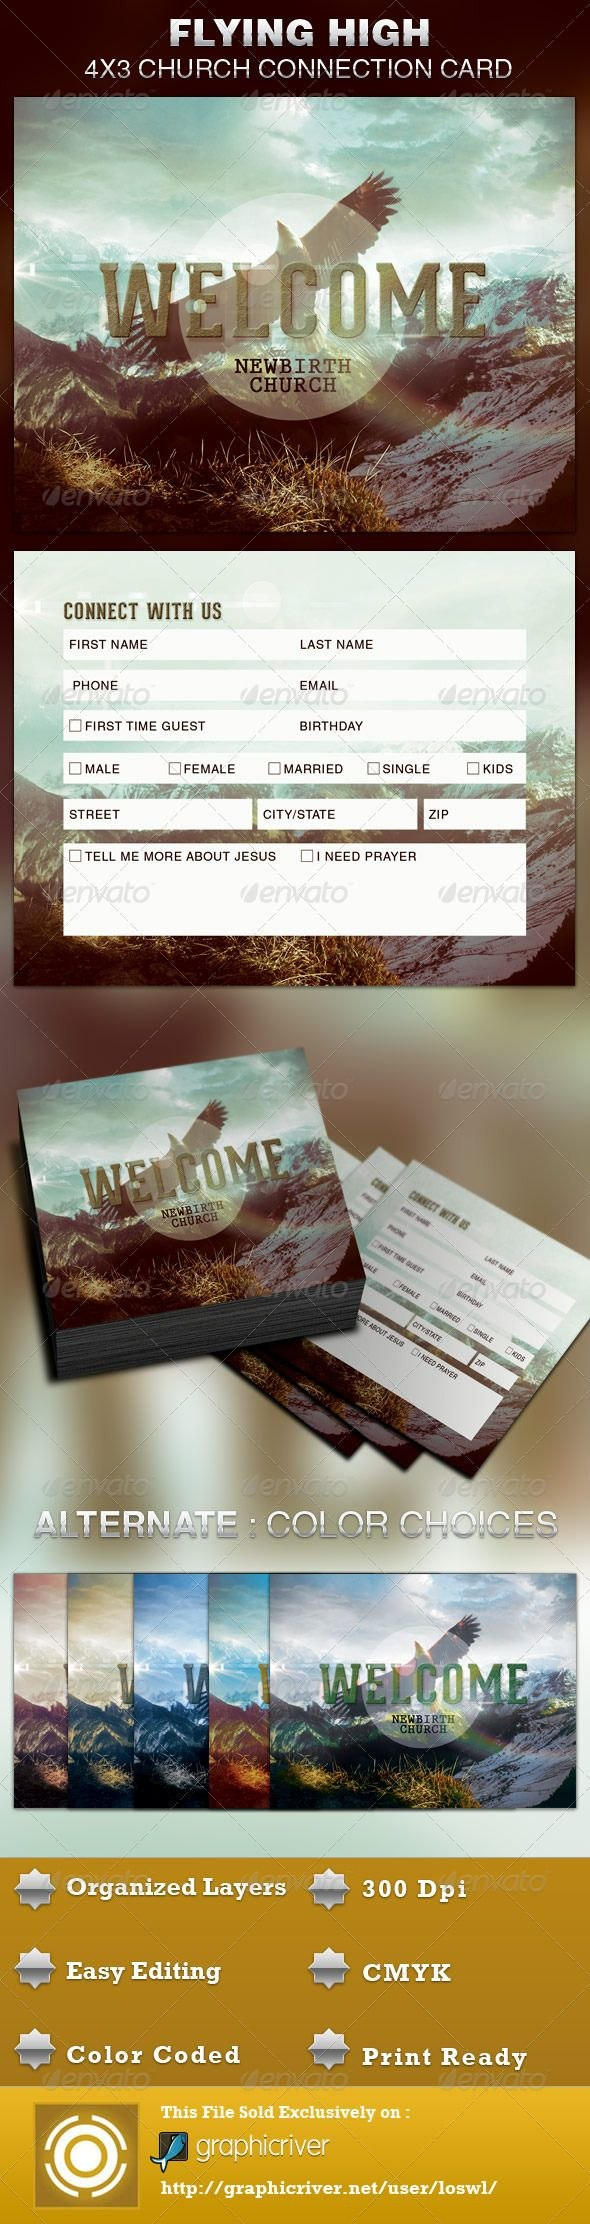 The Flying High Church Connection Card Template Is Great For Any Intended For Decision Card Template